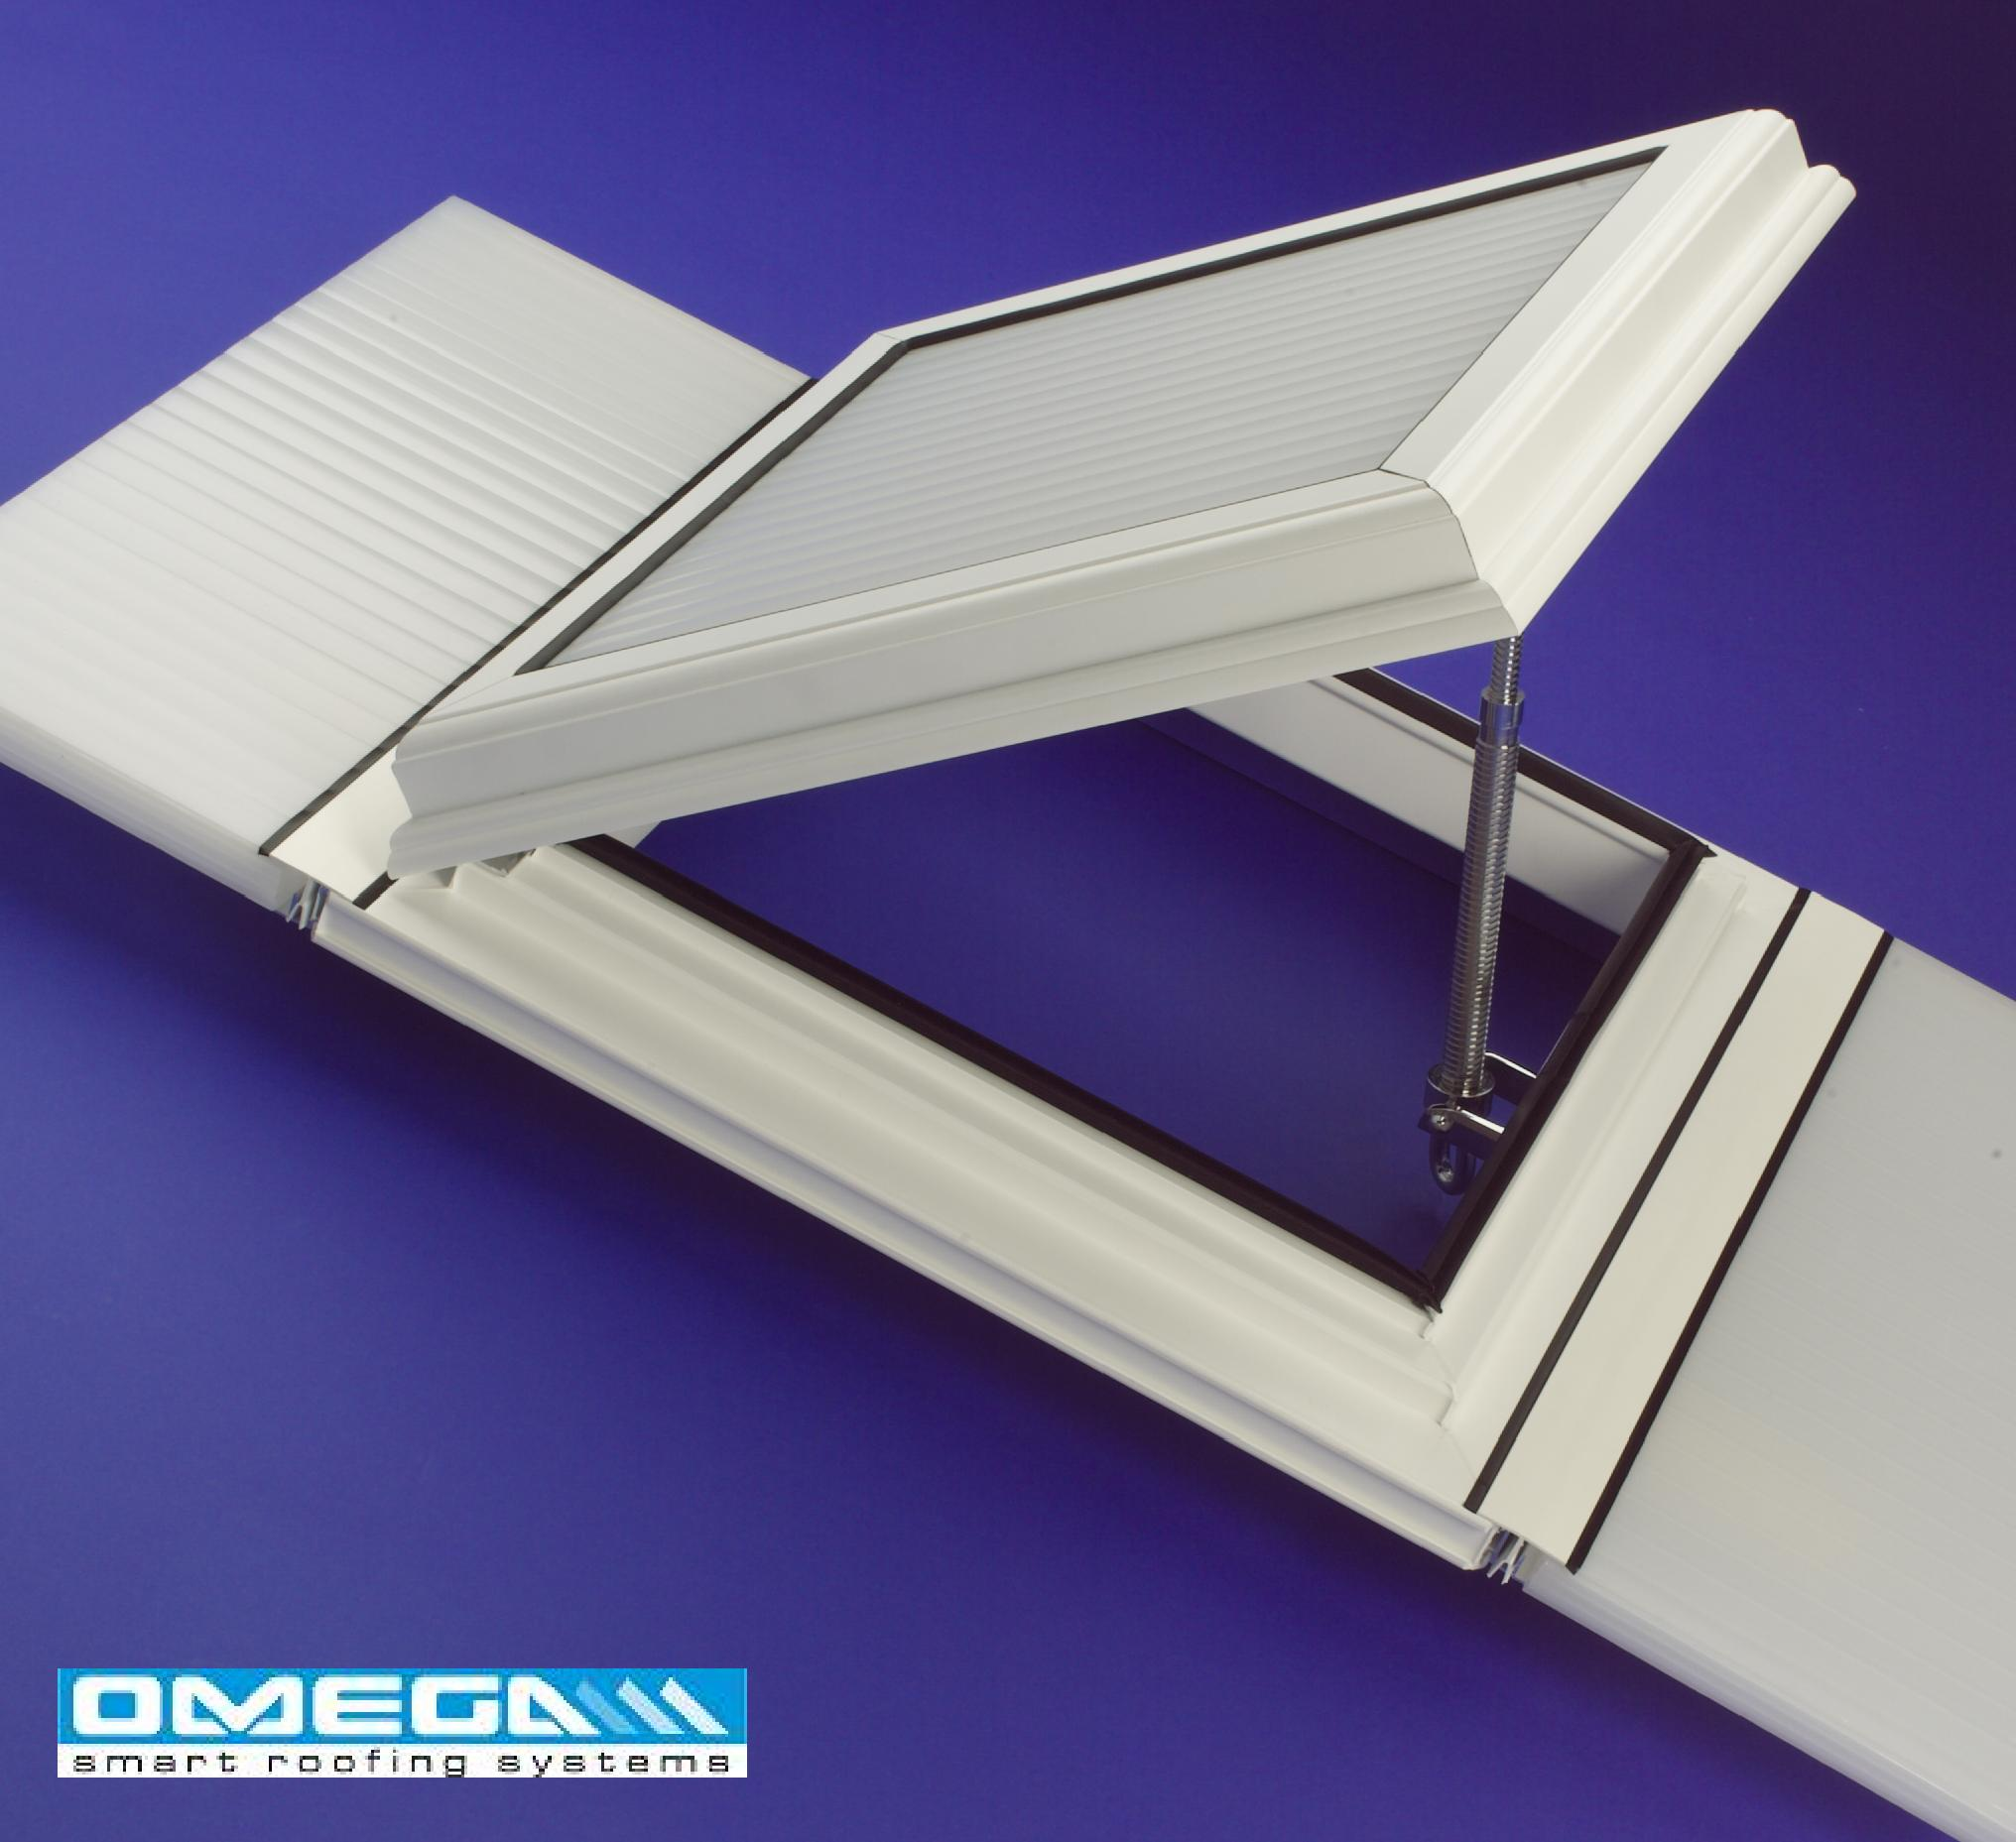 Aluminium/uPVC Conservatory Roof Vent (Bar-to-Bar) for 25mm thick polycarbonate